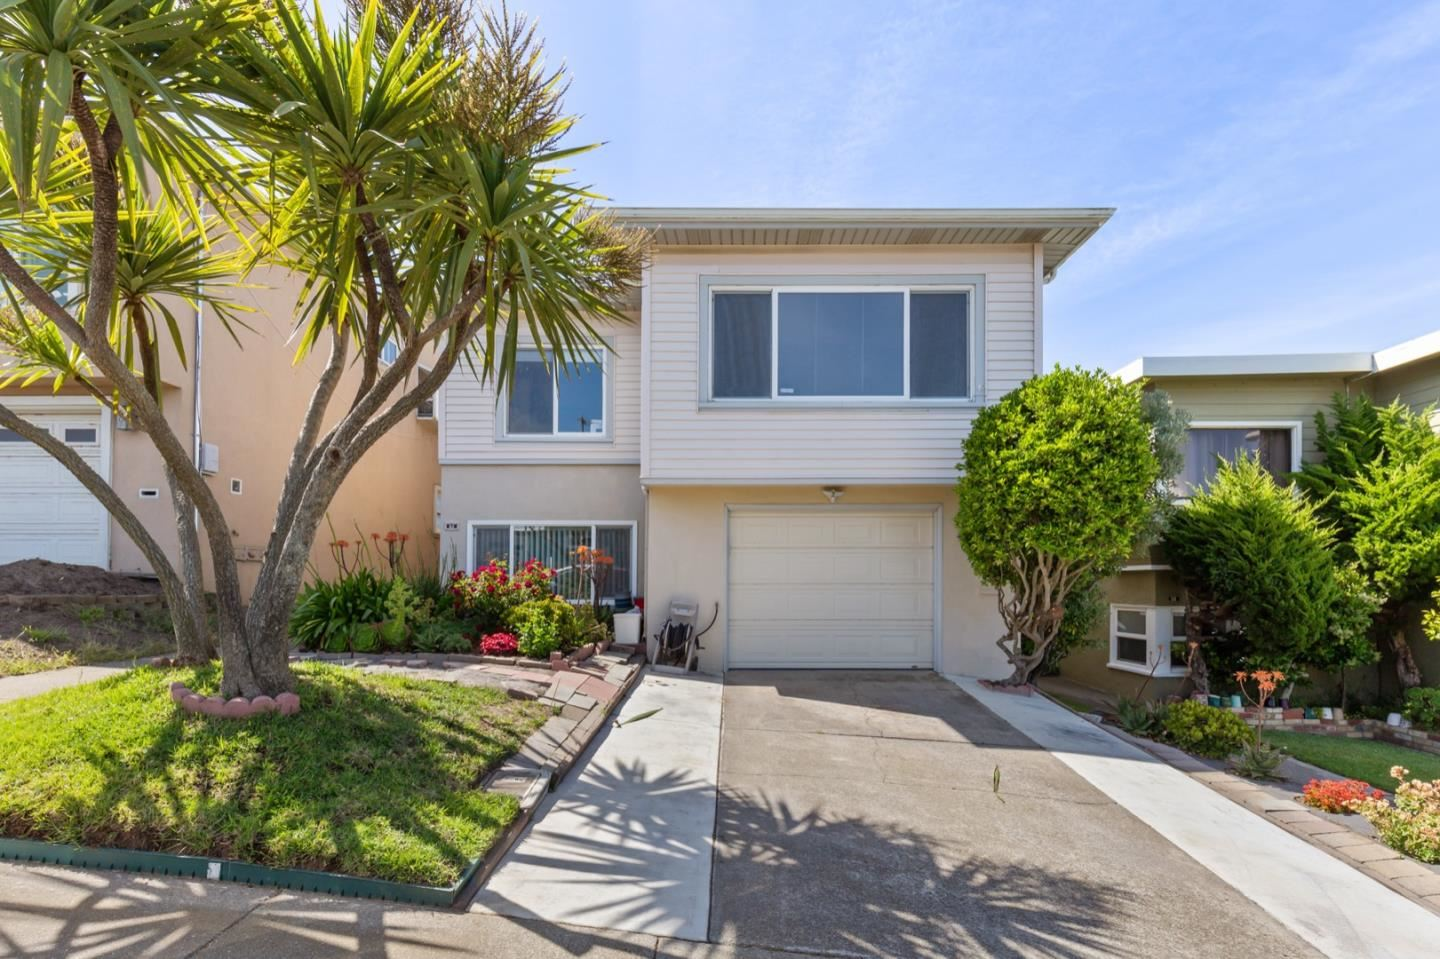 Photo for 62 Seacliff AVE, DALY CITY, CA 94015 (MLS # ML81794812)